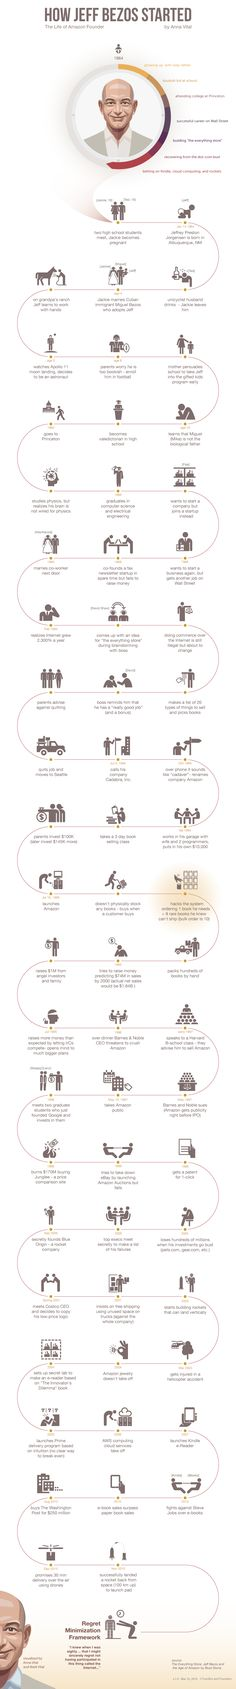 How Jeff Bezos Started His life visualized by @annavital